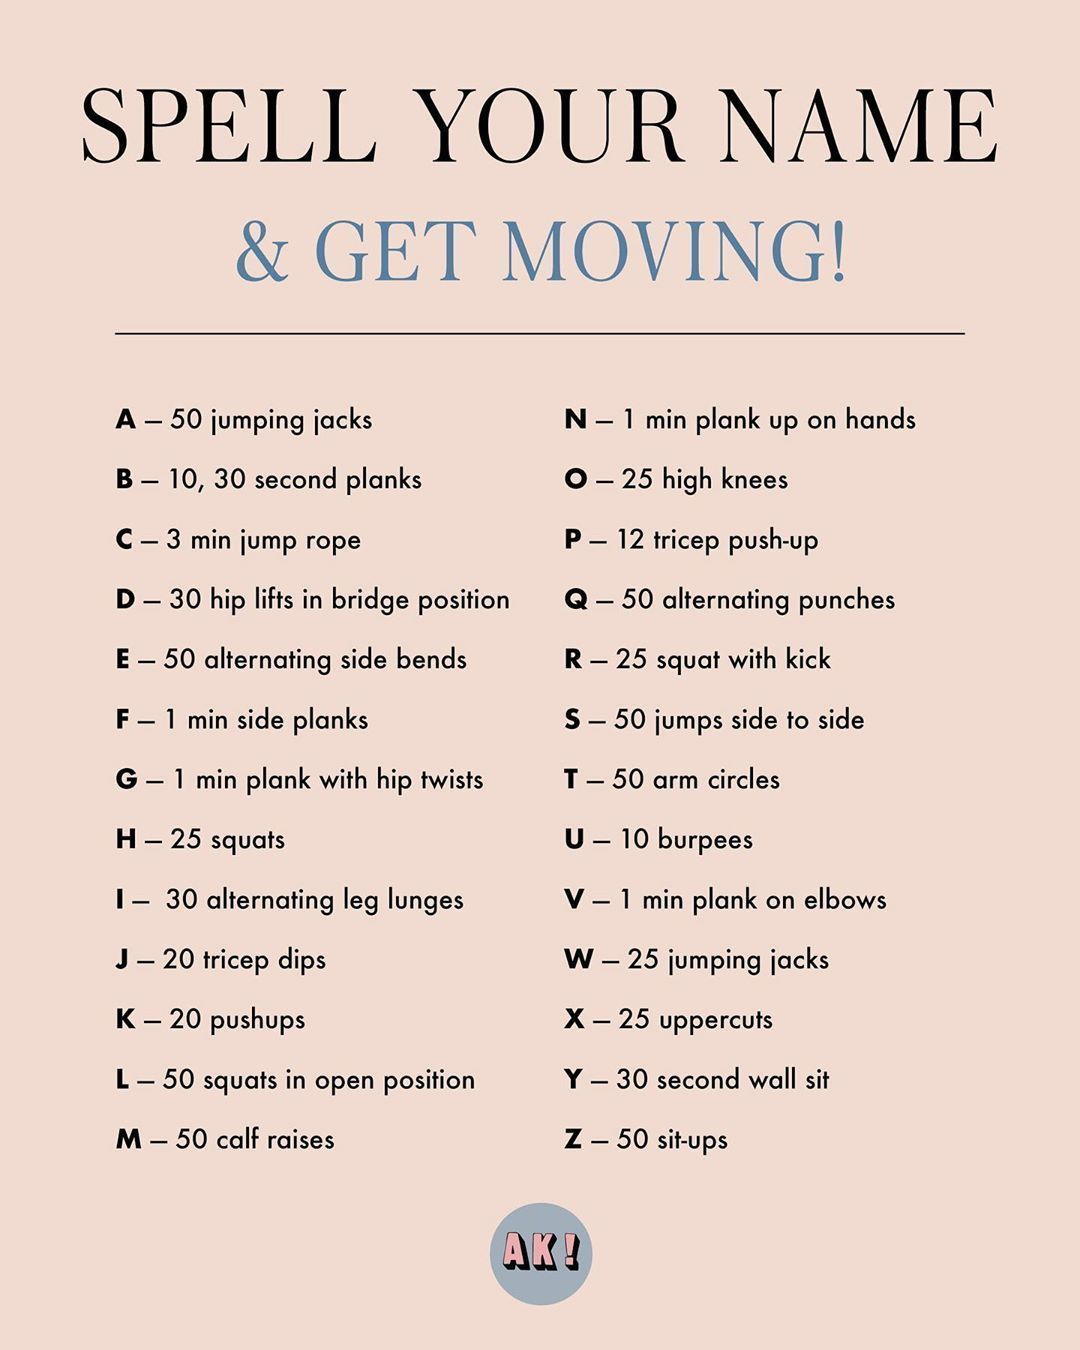 Workout Plan Spell Your Name Workout Your Name In 2020 Spell Your Name Workout Workout Plan For Beginners At Home Workout Plan